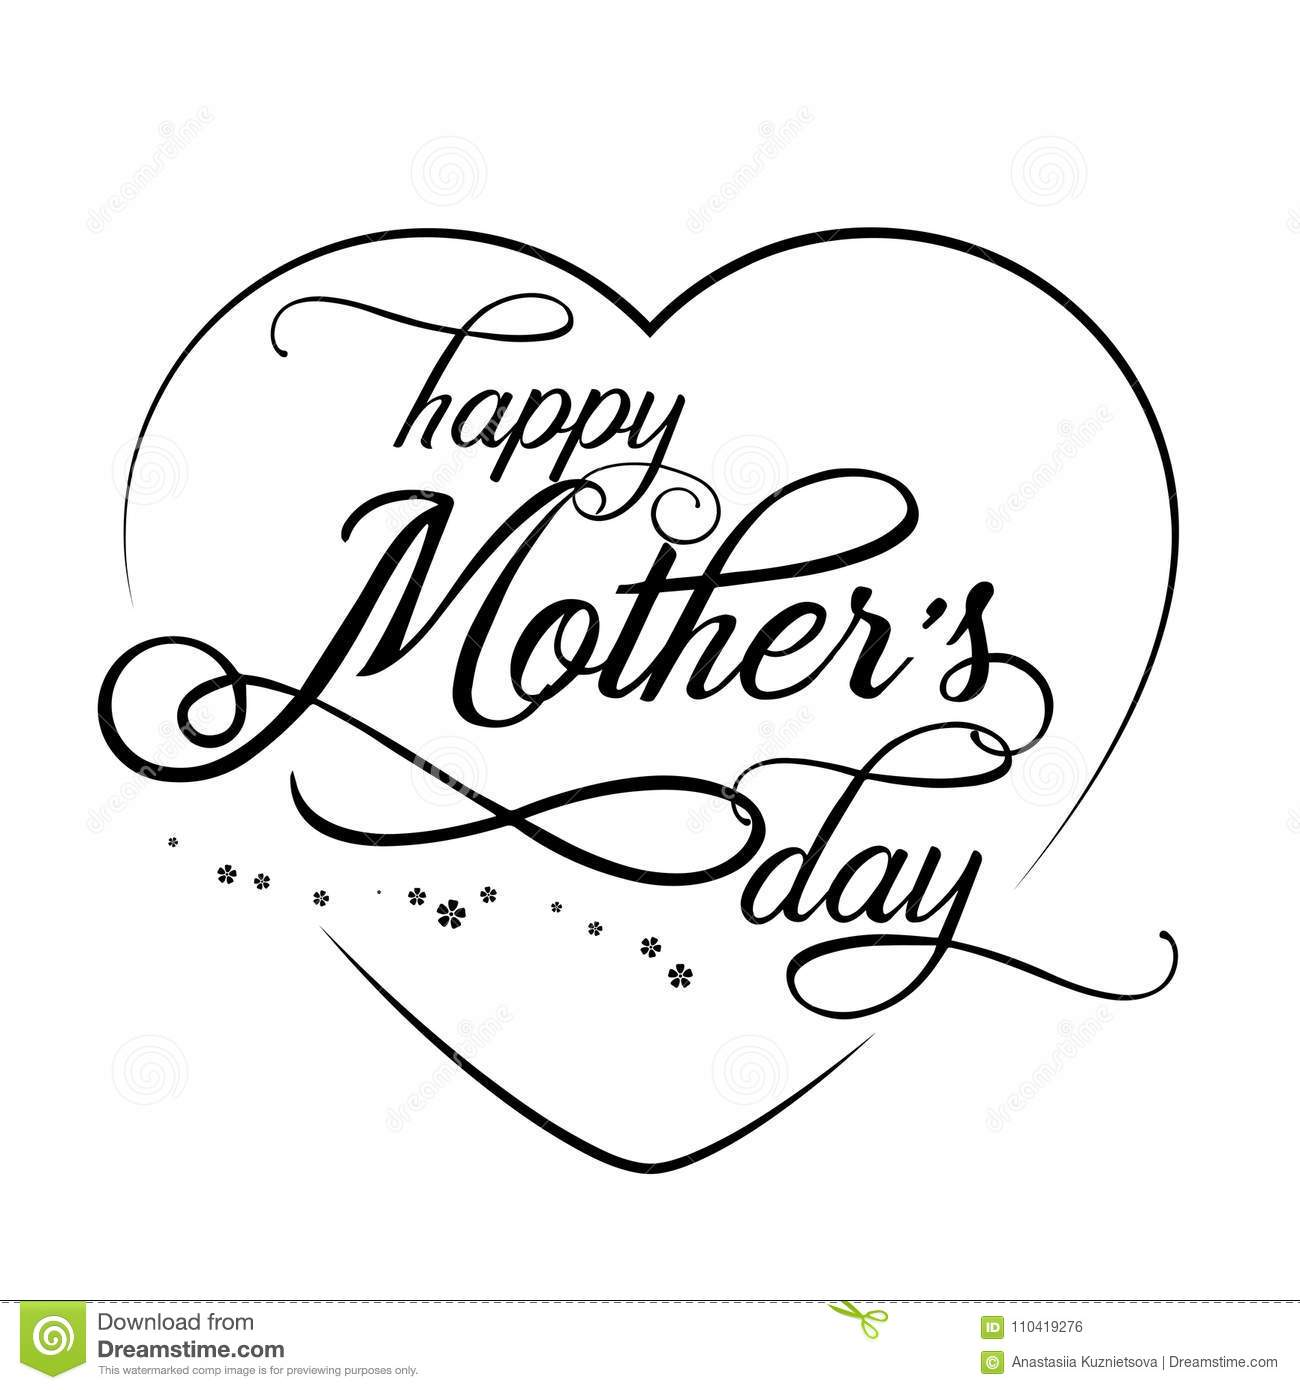 hand drawn elegant modern lettering of happy mother s day isolated Happy Mother's Wishes hand drawn elegant modern lettering of happy mother s day isolated on white background